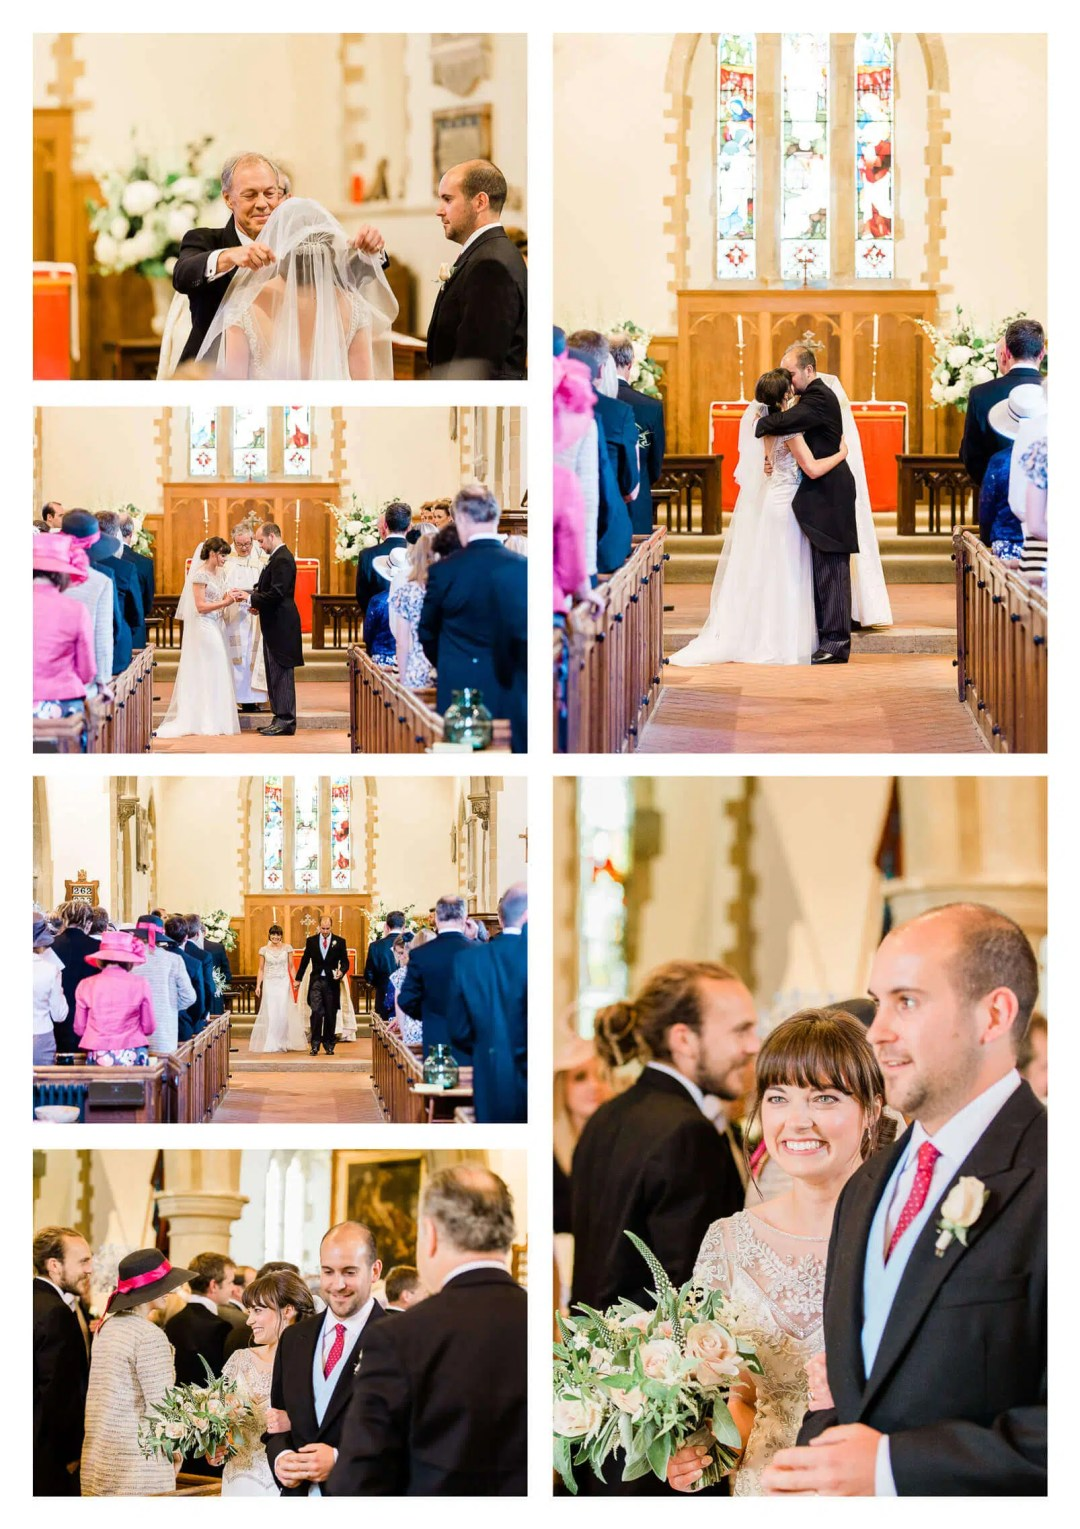 St James Church wedding ceremony in Stedham West Sussex Photographer